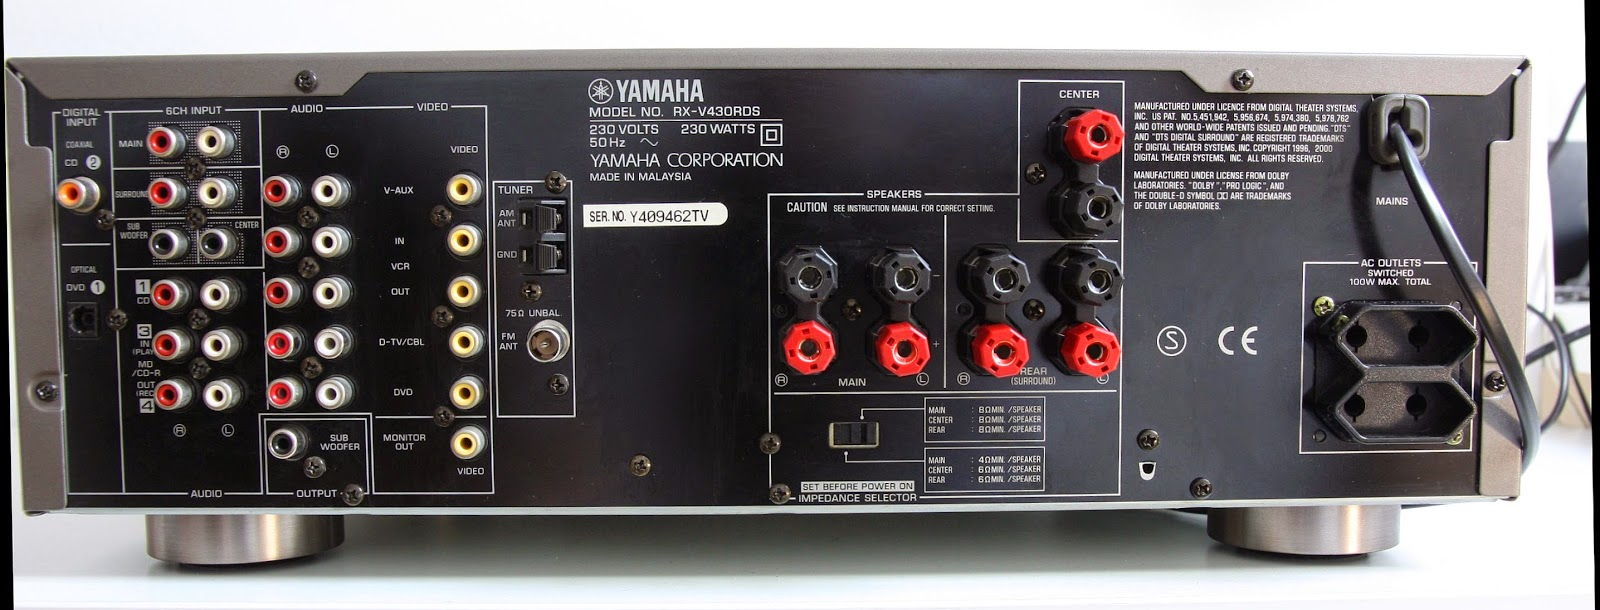 Yamaha Av Receiver Wiring Diagram The Best Parts Auto